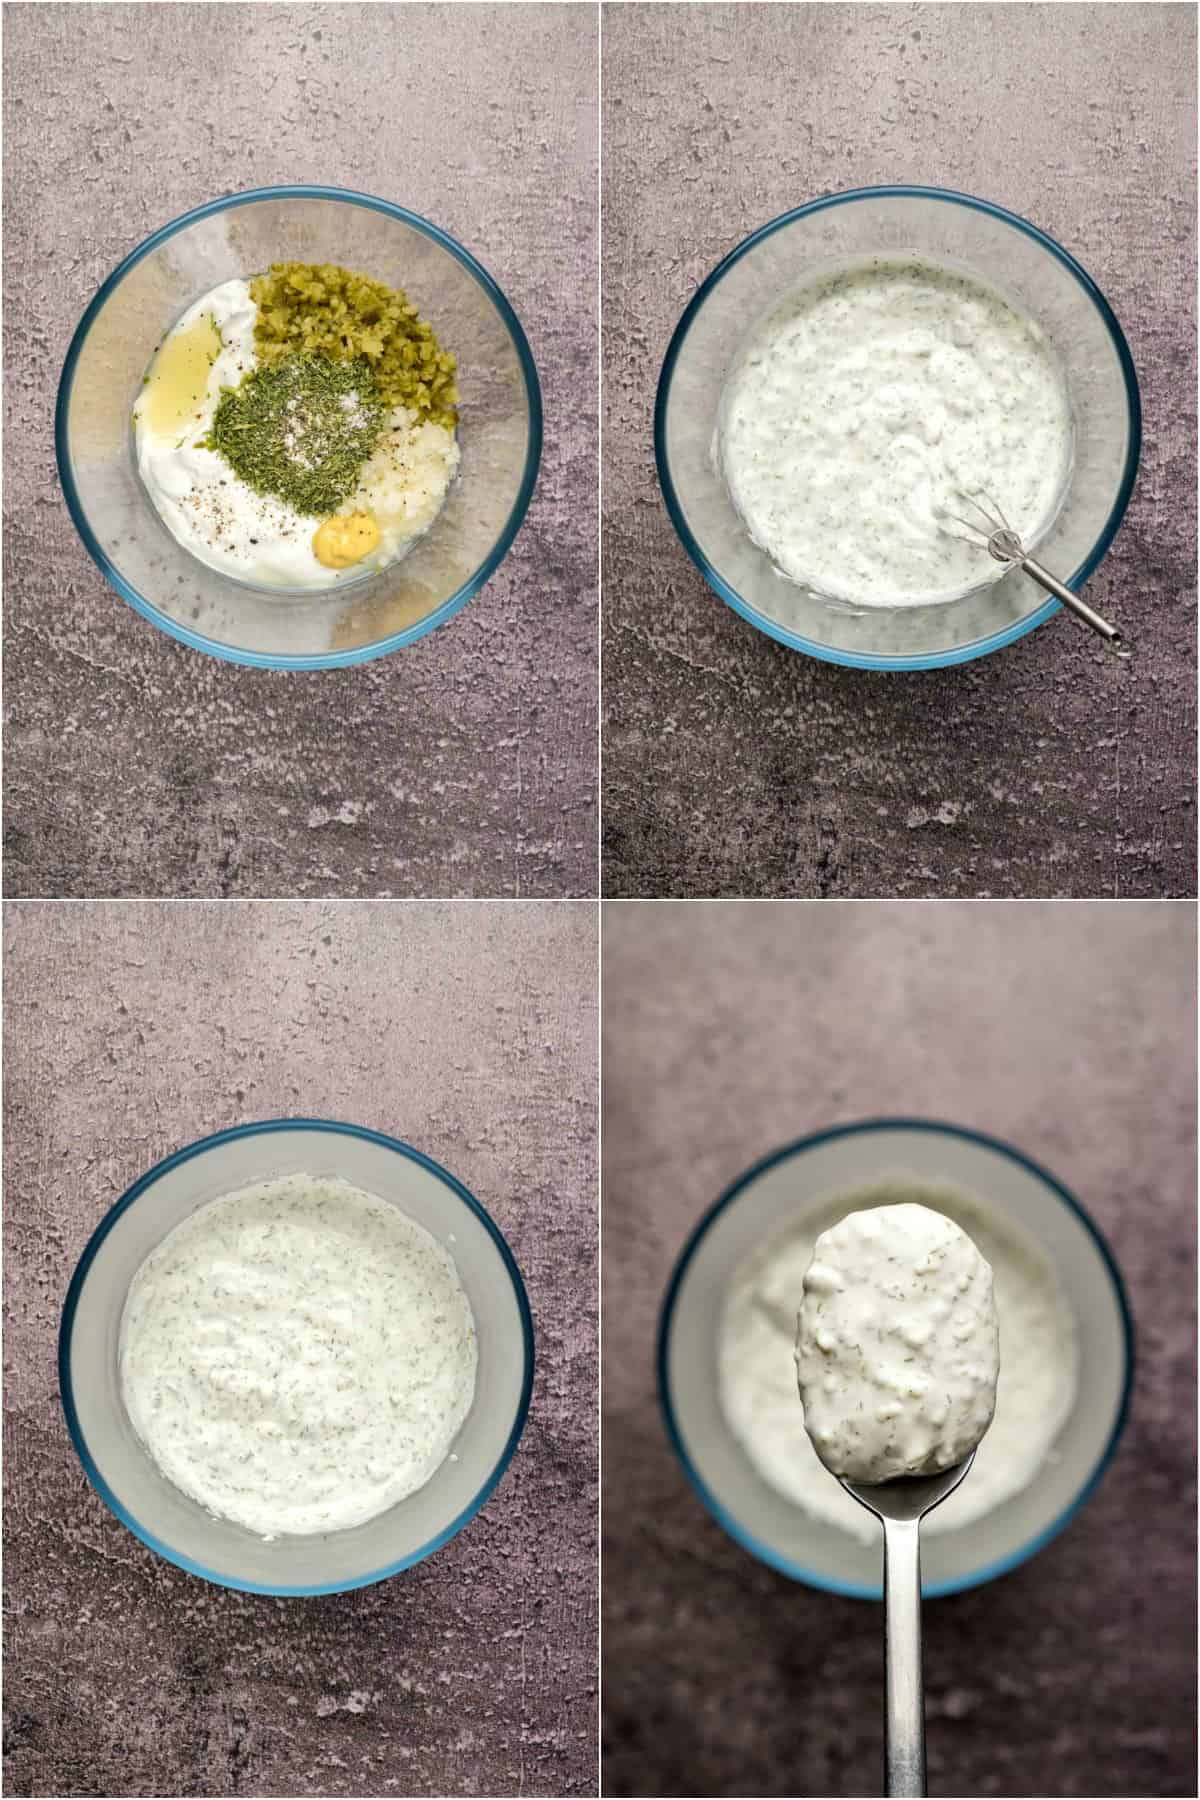 Step by step process photo collage of making homemade tartar sauce.